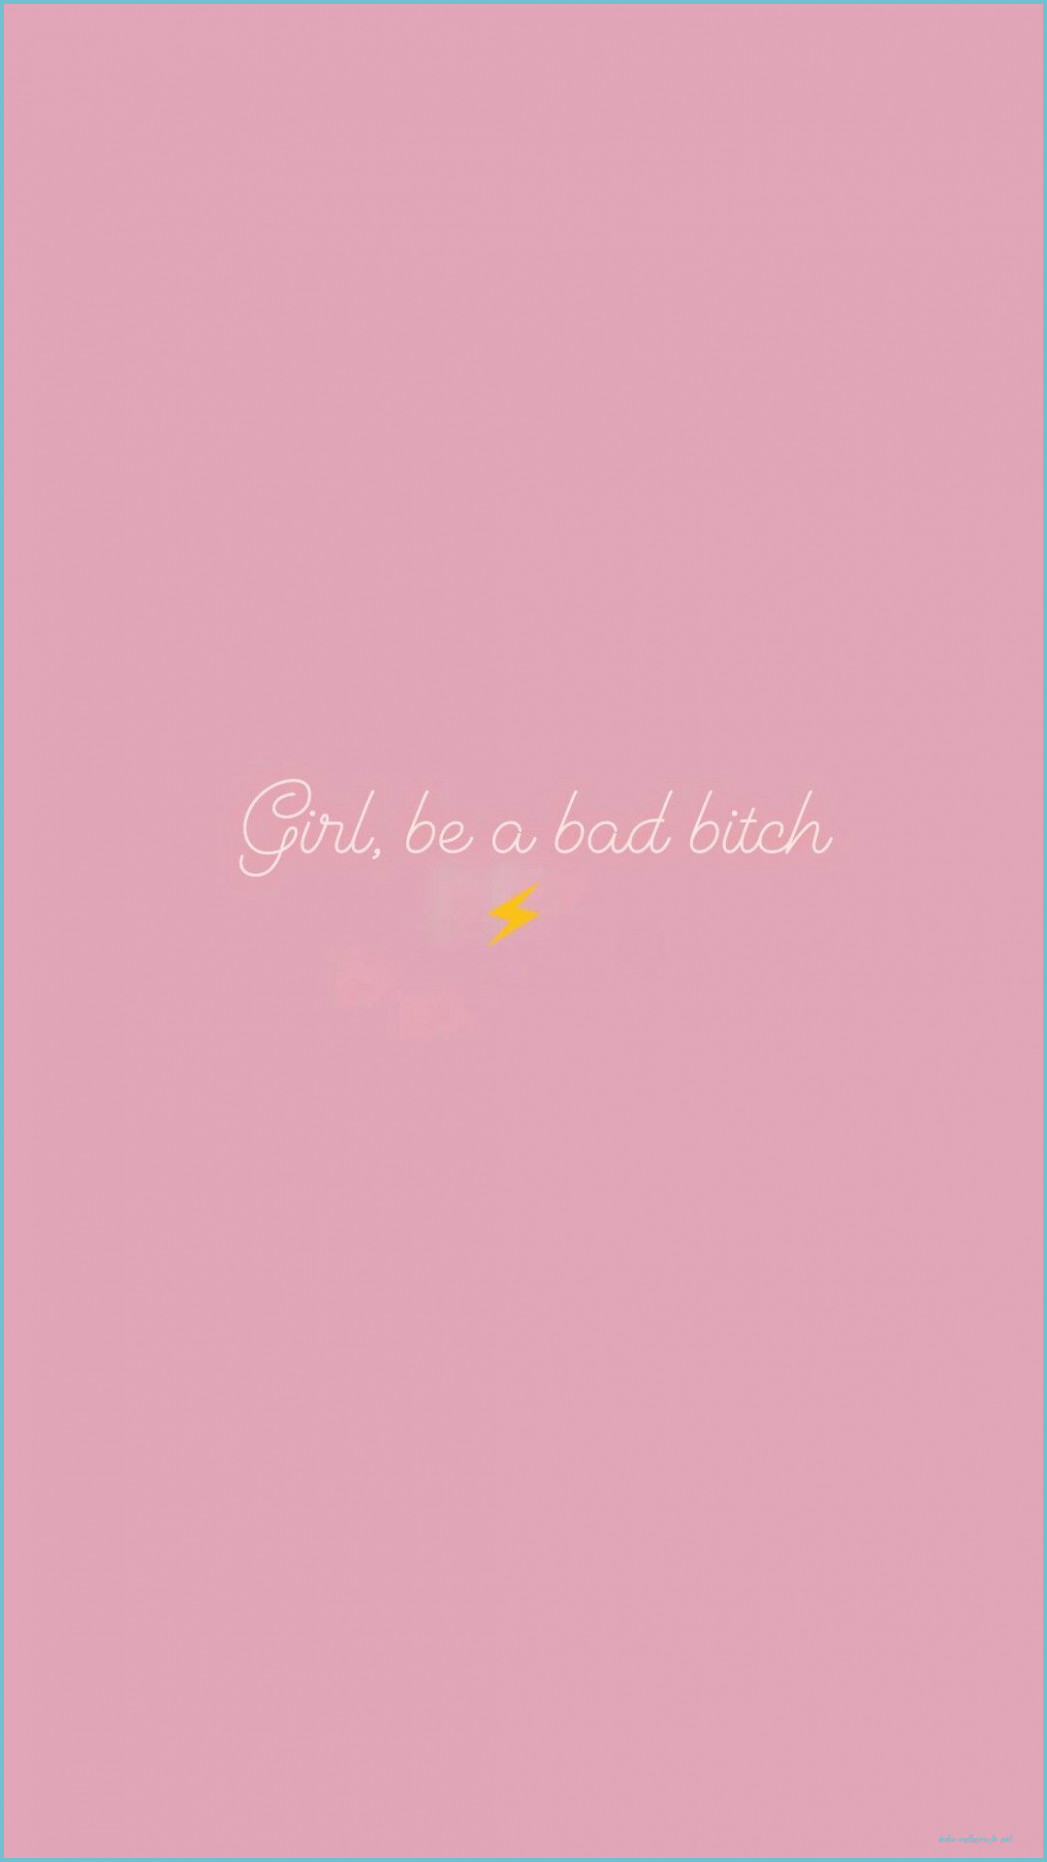 Pin on bad bitchwallpaper iphone   badass wallpapers for girls Neat 1047x1862